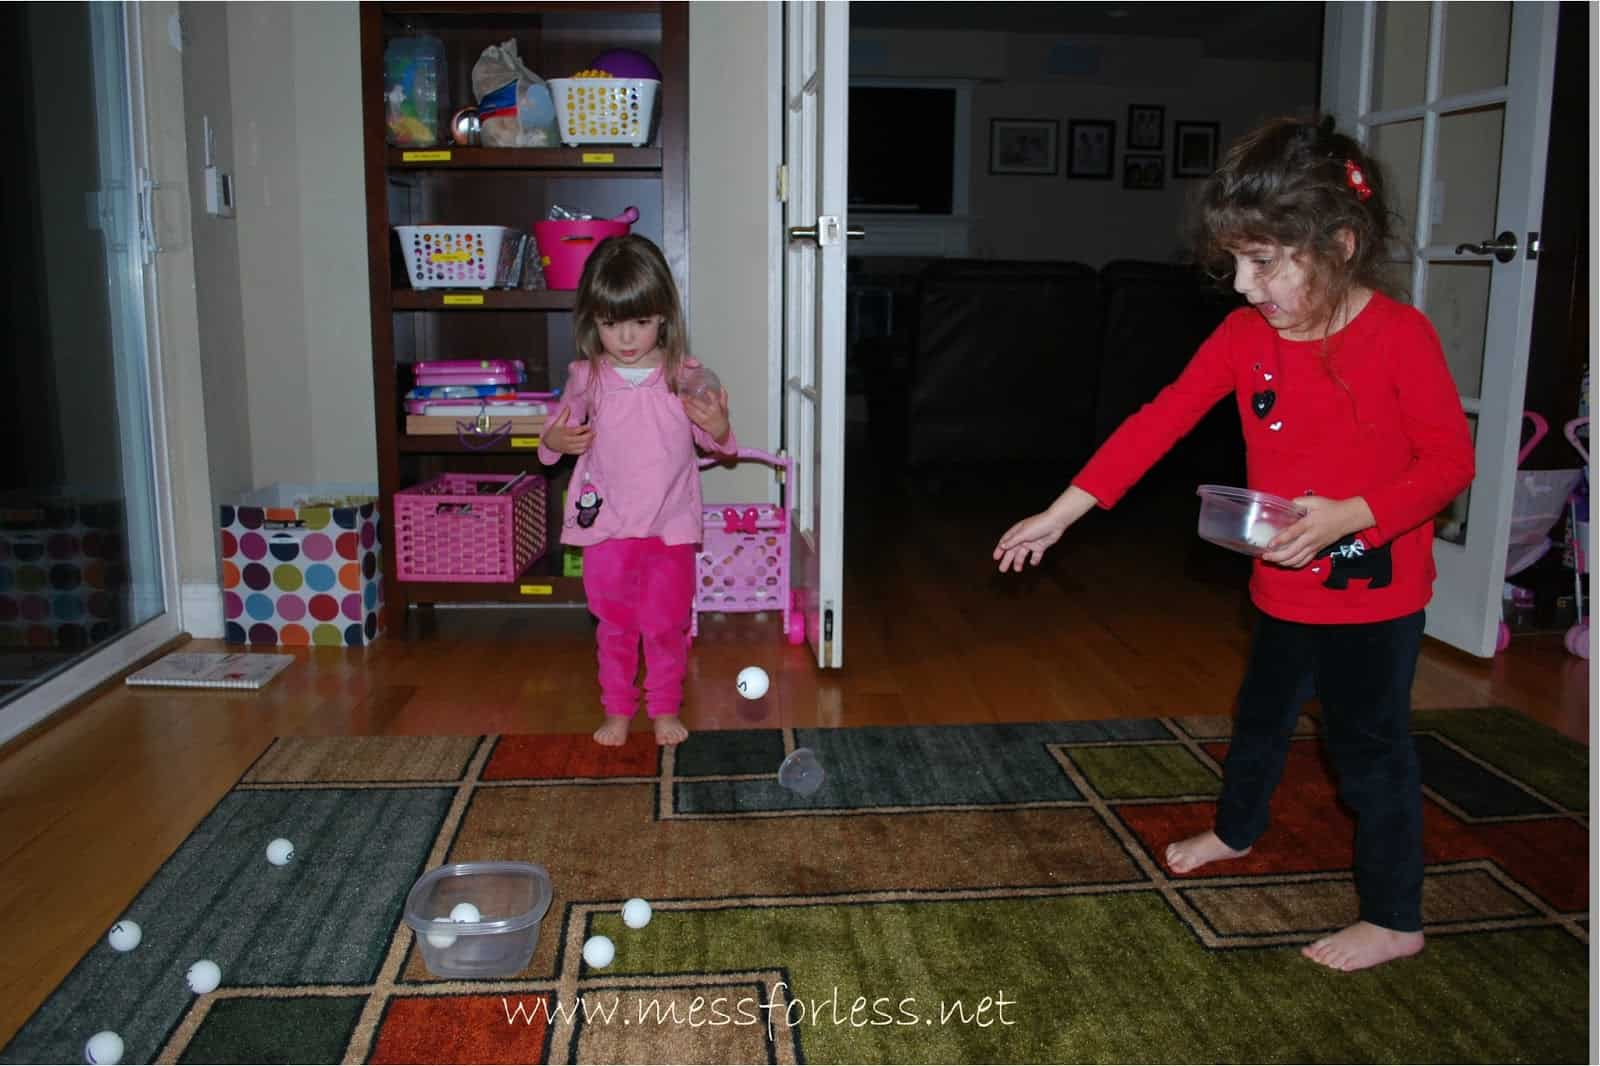 Fun Math Numbered Ball Toss Mess For Less